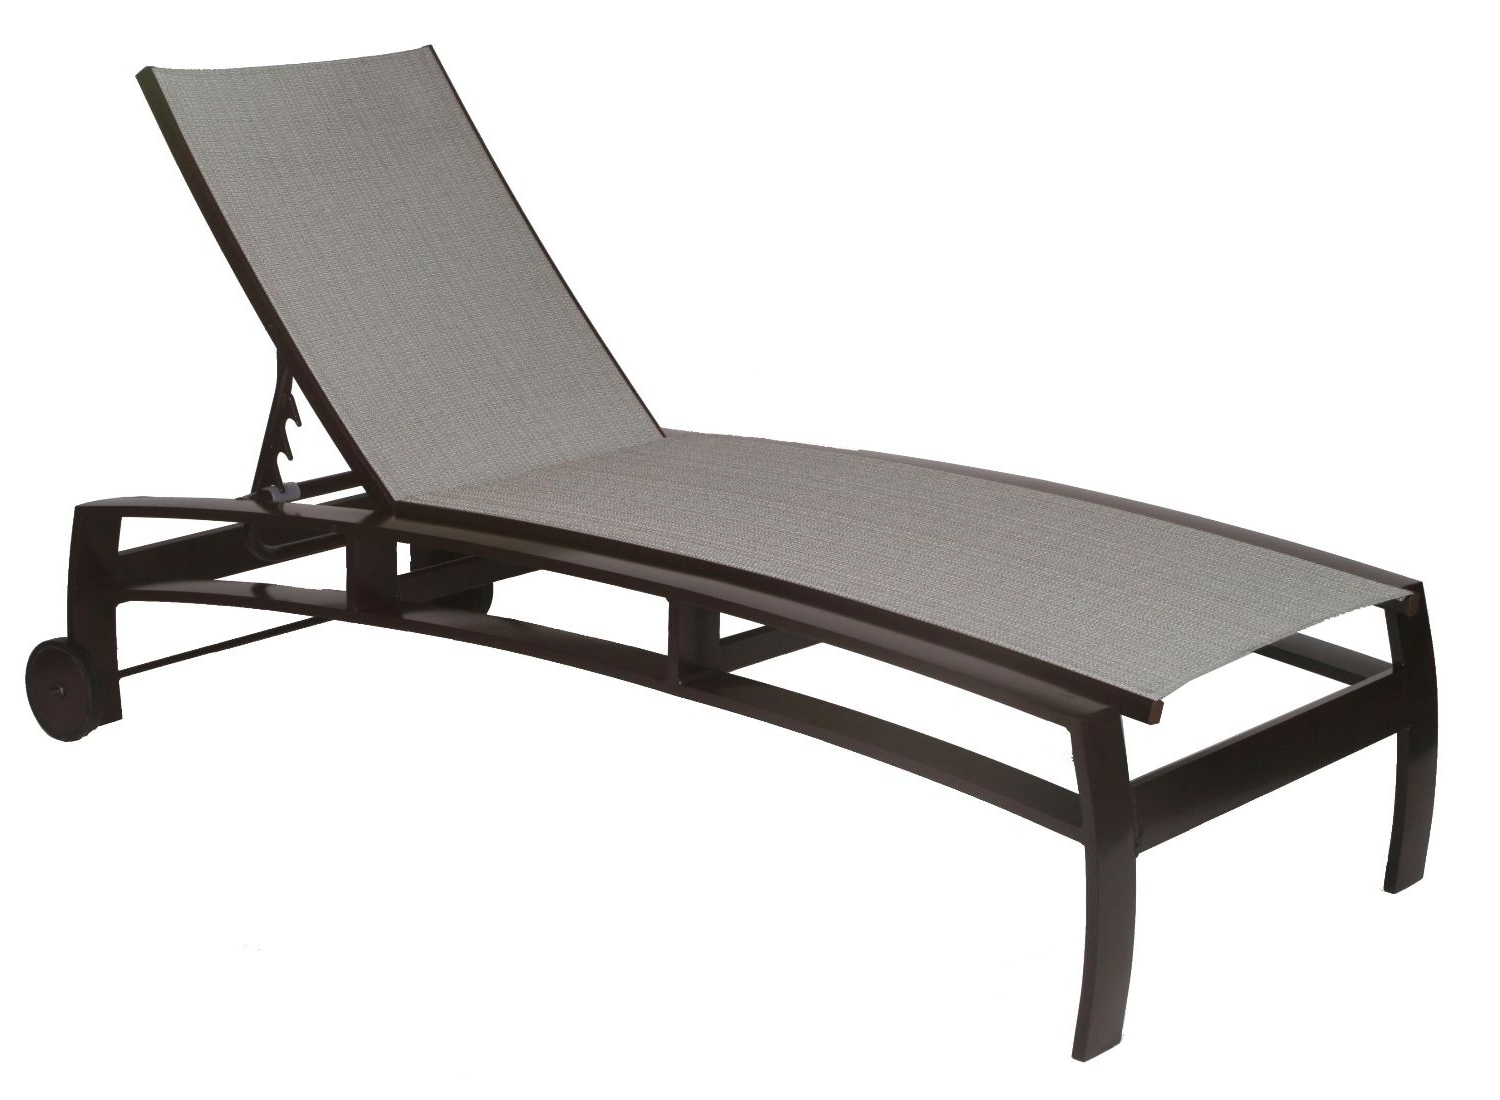 Sling Chaise Lounge Chair 15 The Best Sling Chaise Lounge Chairs For Outdoor